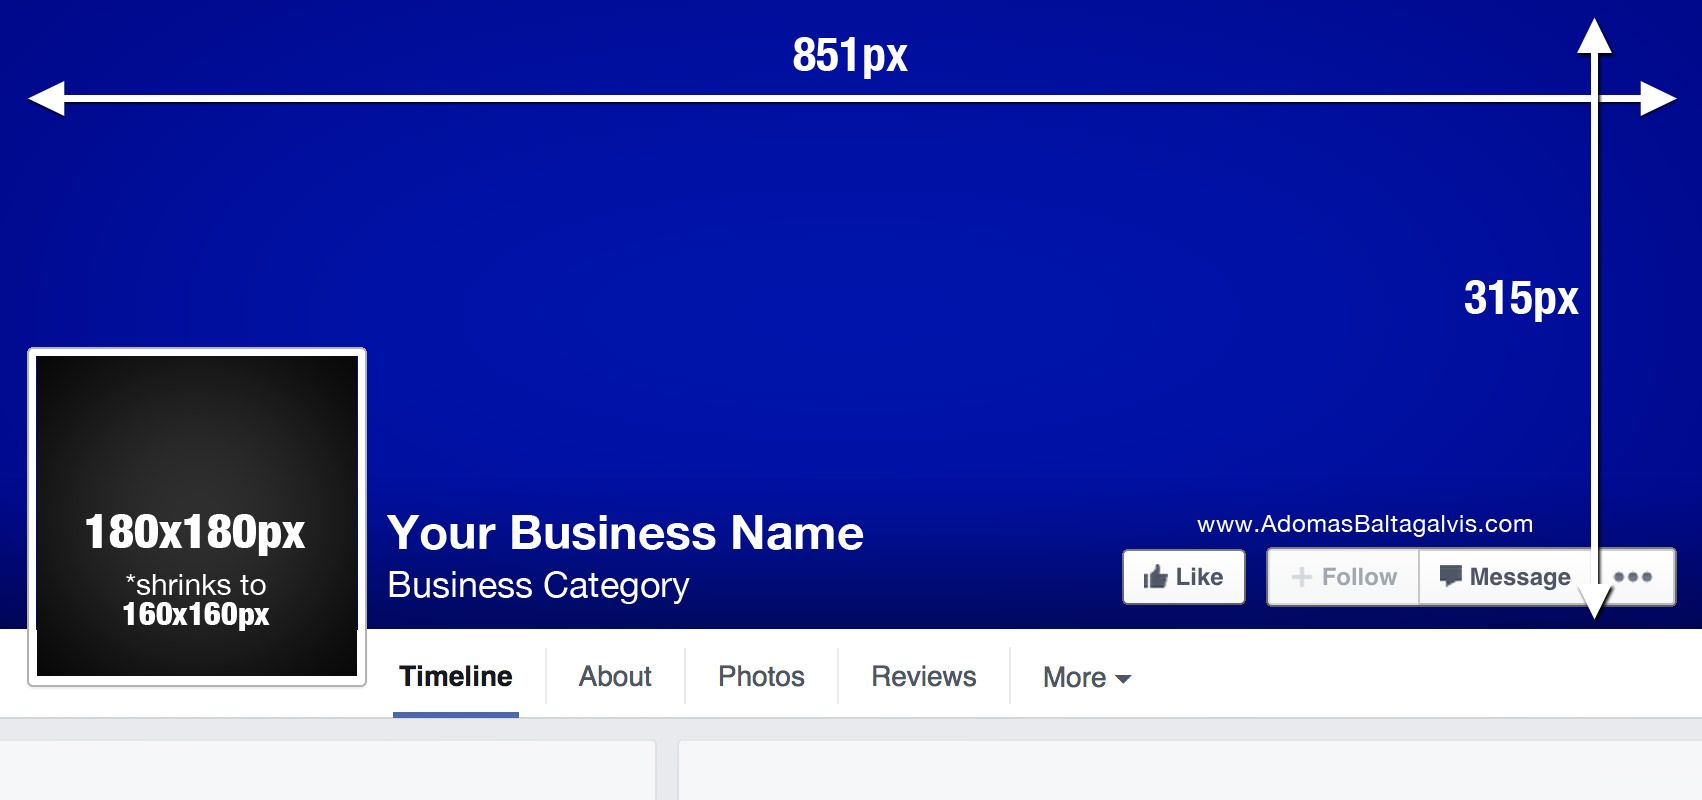 How To Create A Seamless Facebook Cover Photo And Profile